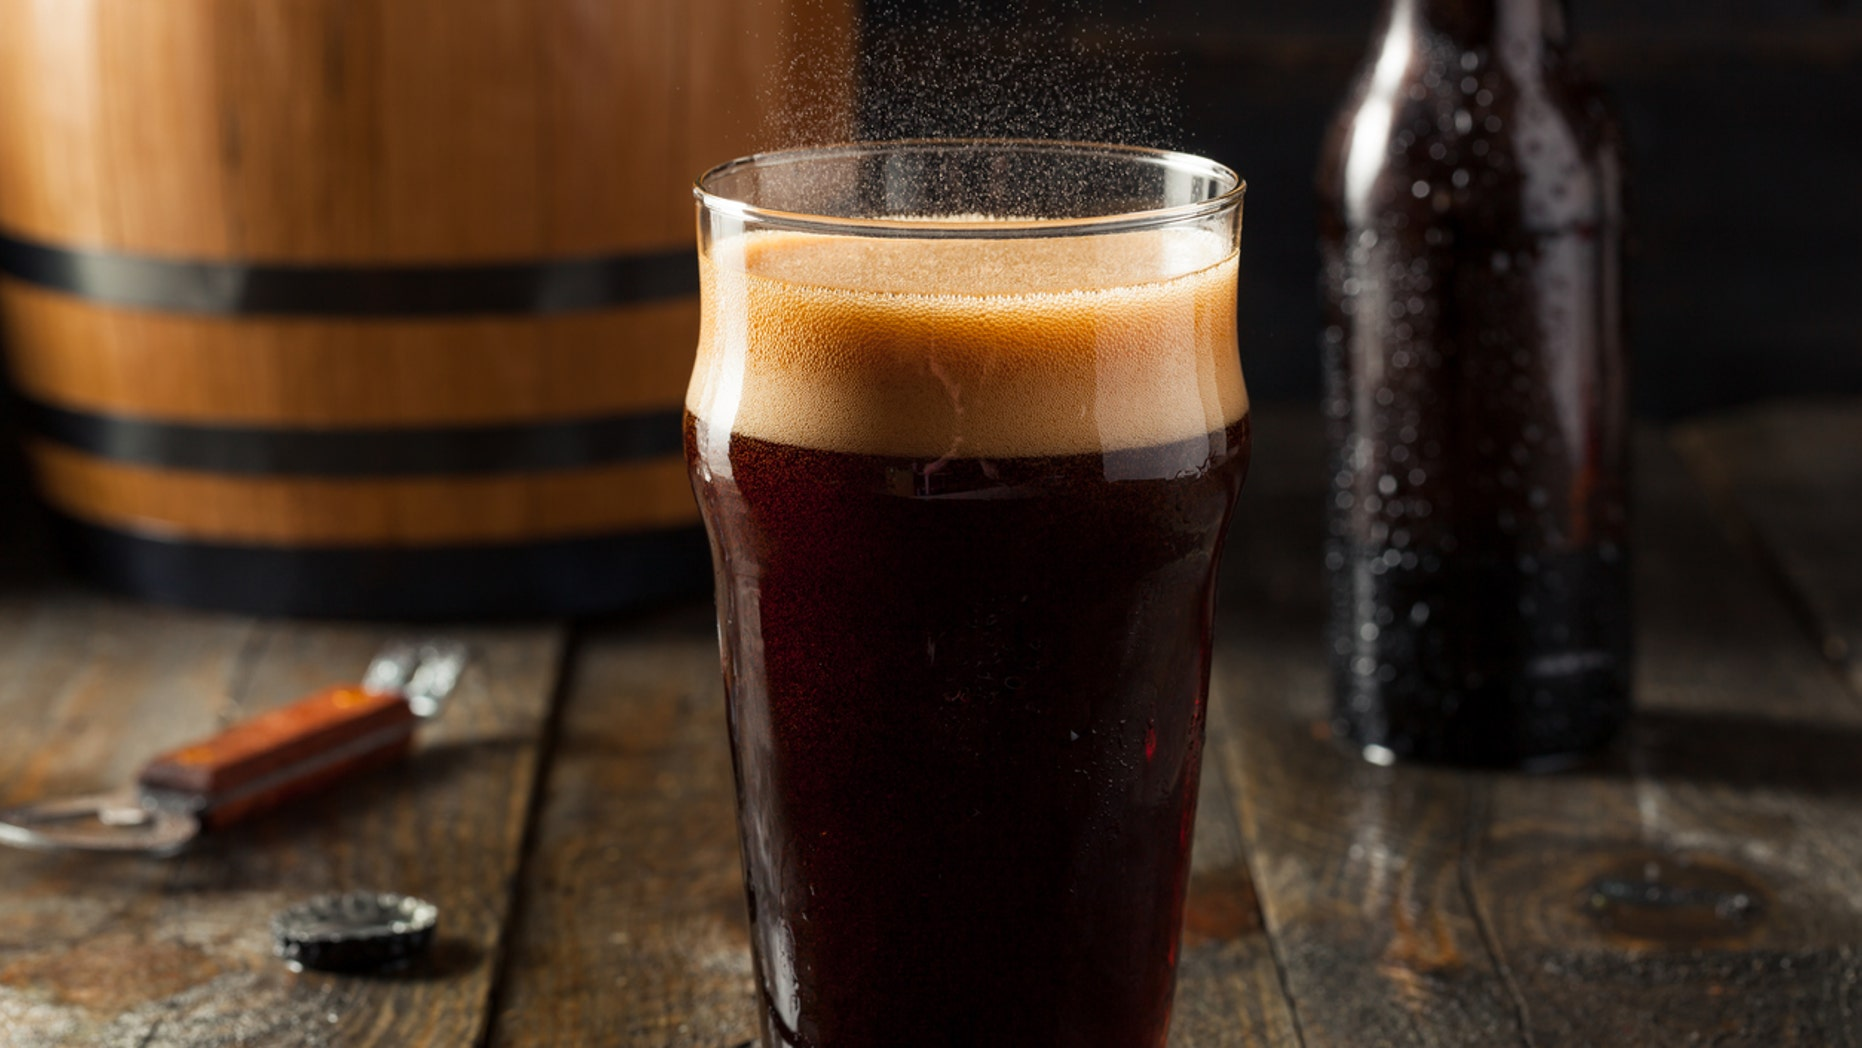 A brewing company apologizedfor a dark beer that shared the same name as a Hindu deity.